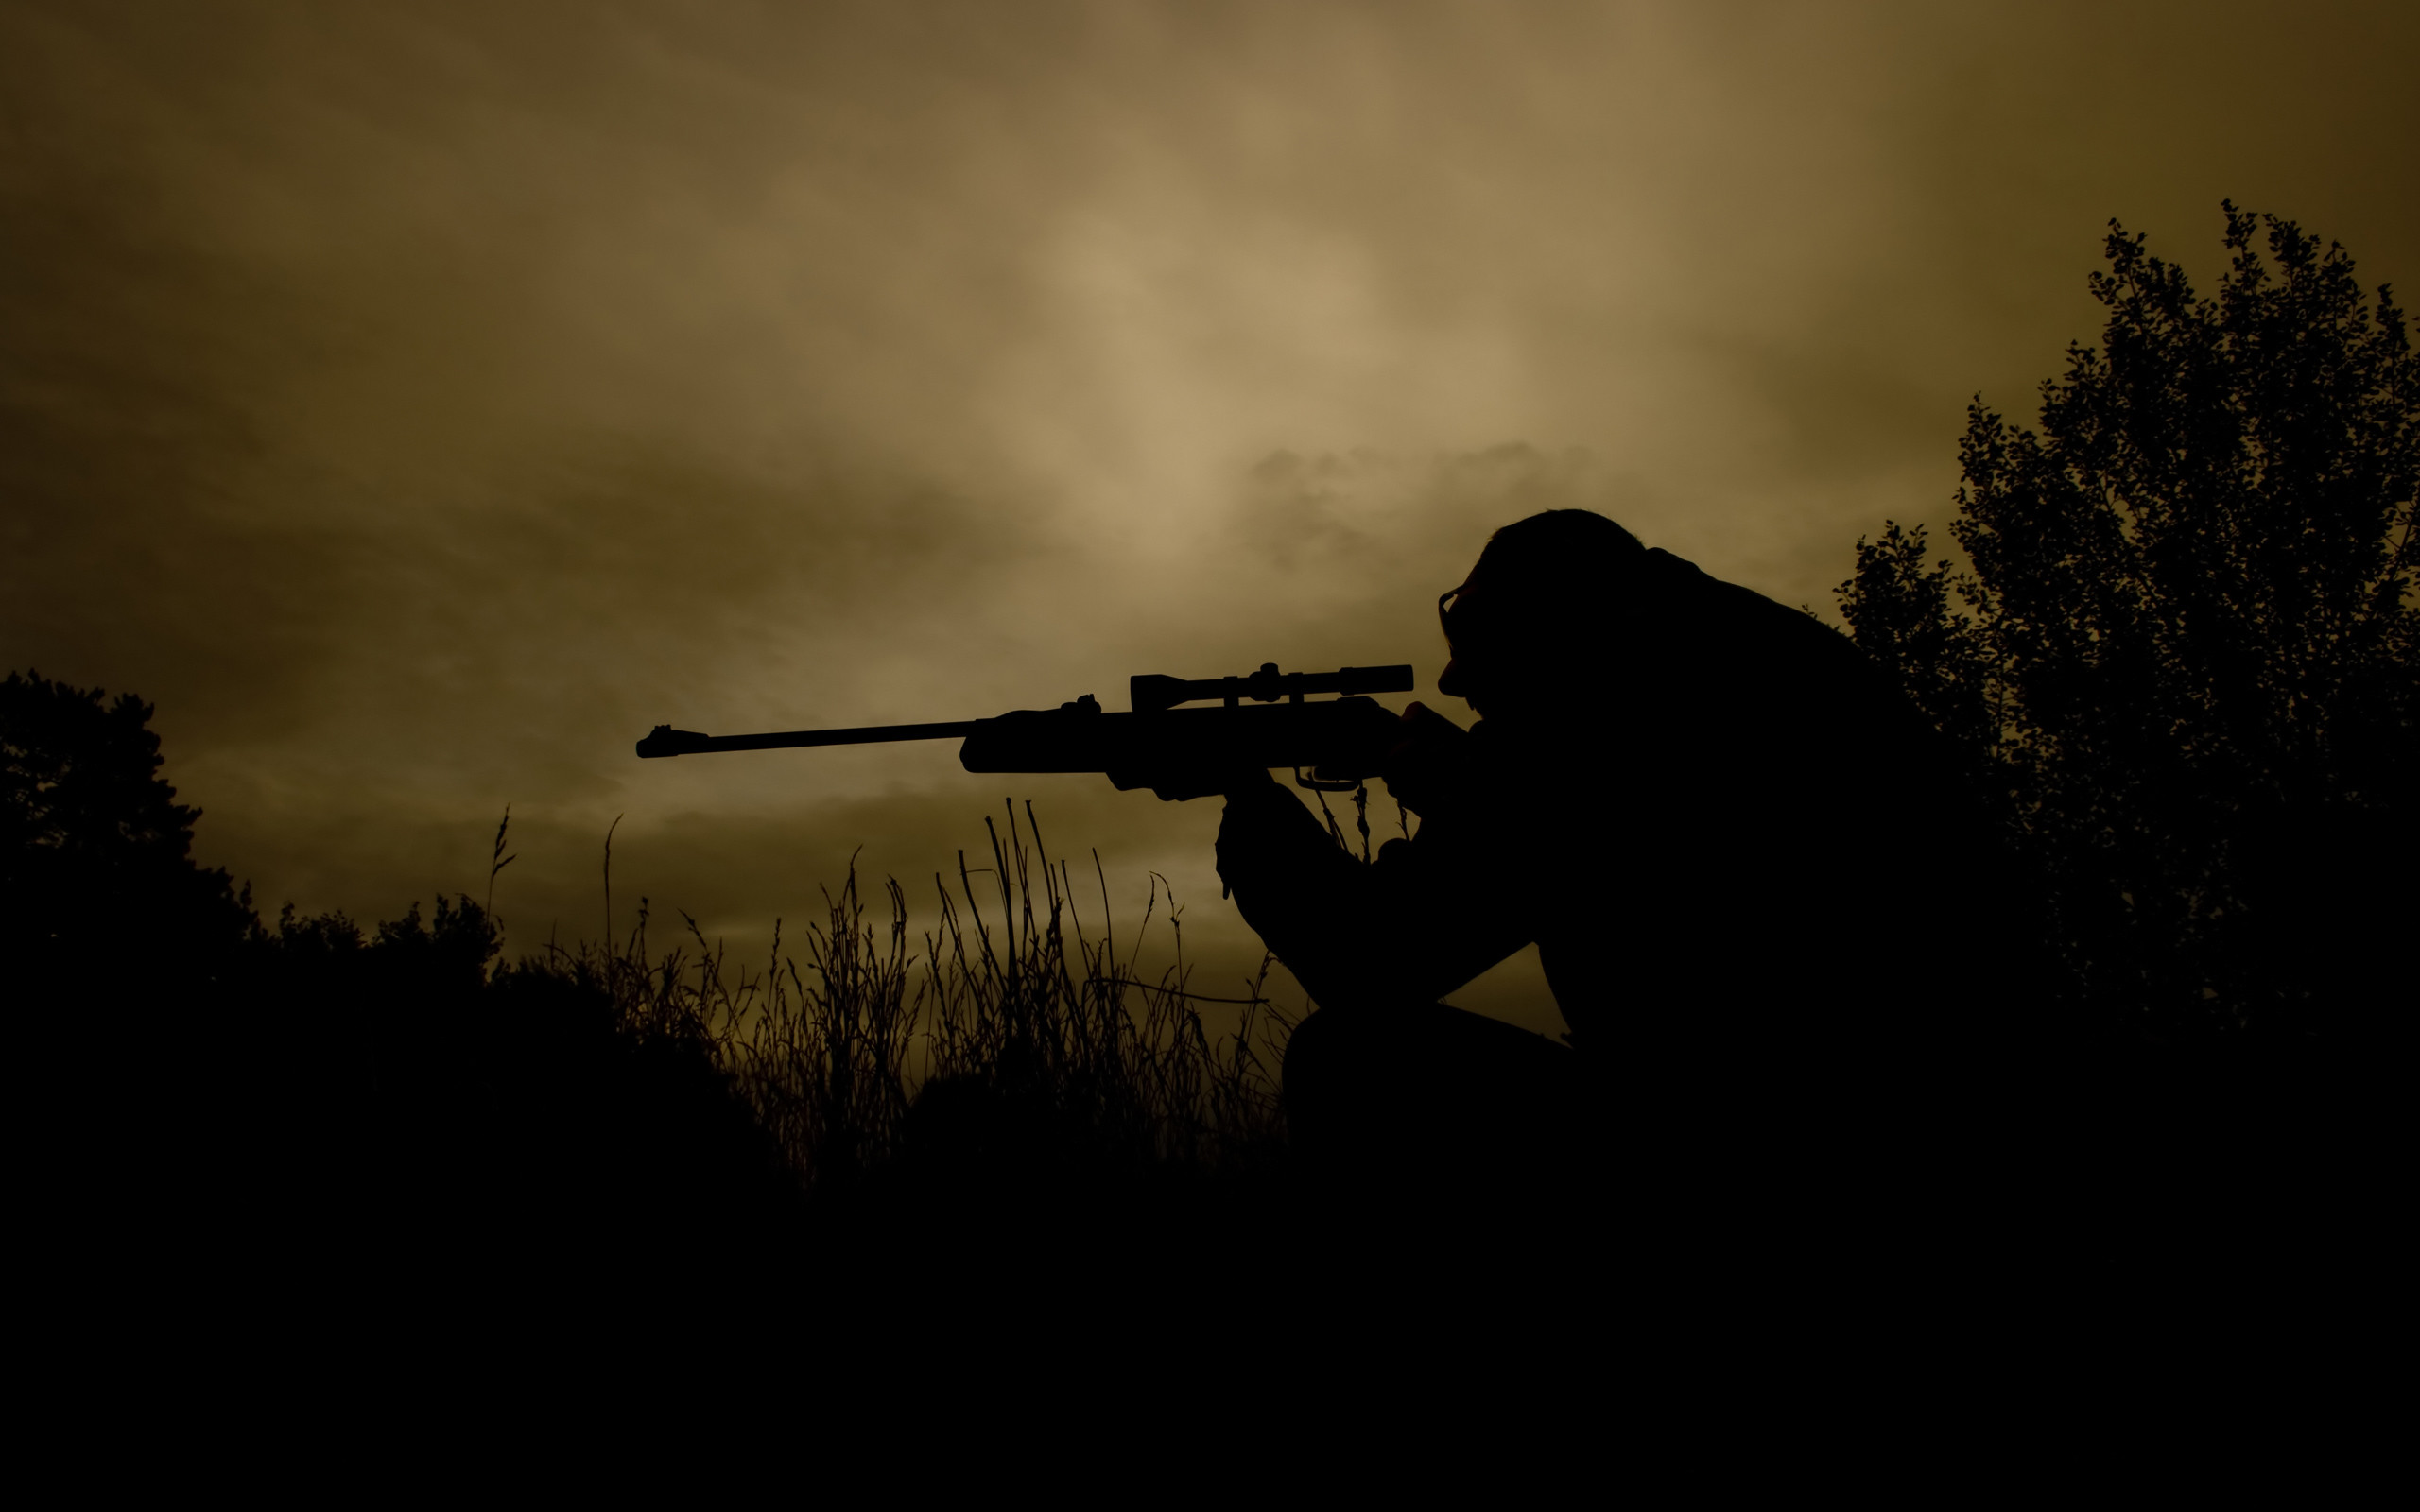 Navy Seal Sniper Wallpaper Photo Perfect Wallpaper Backgrounds .